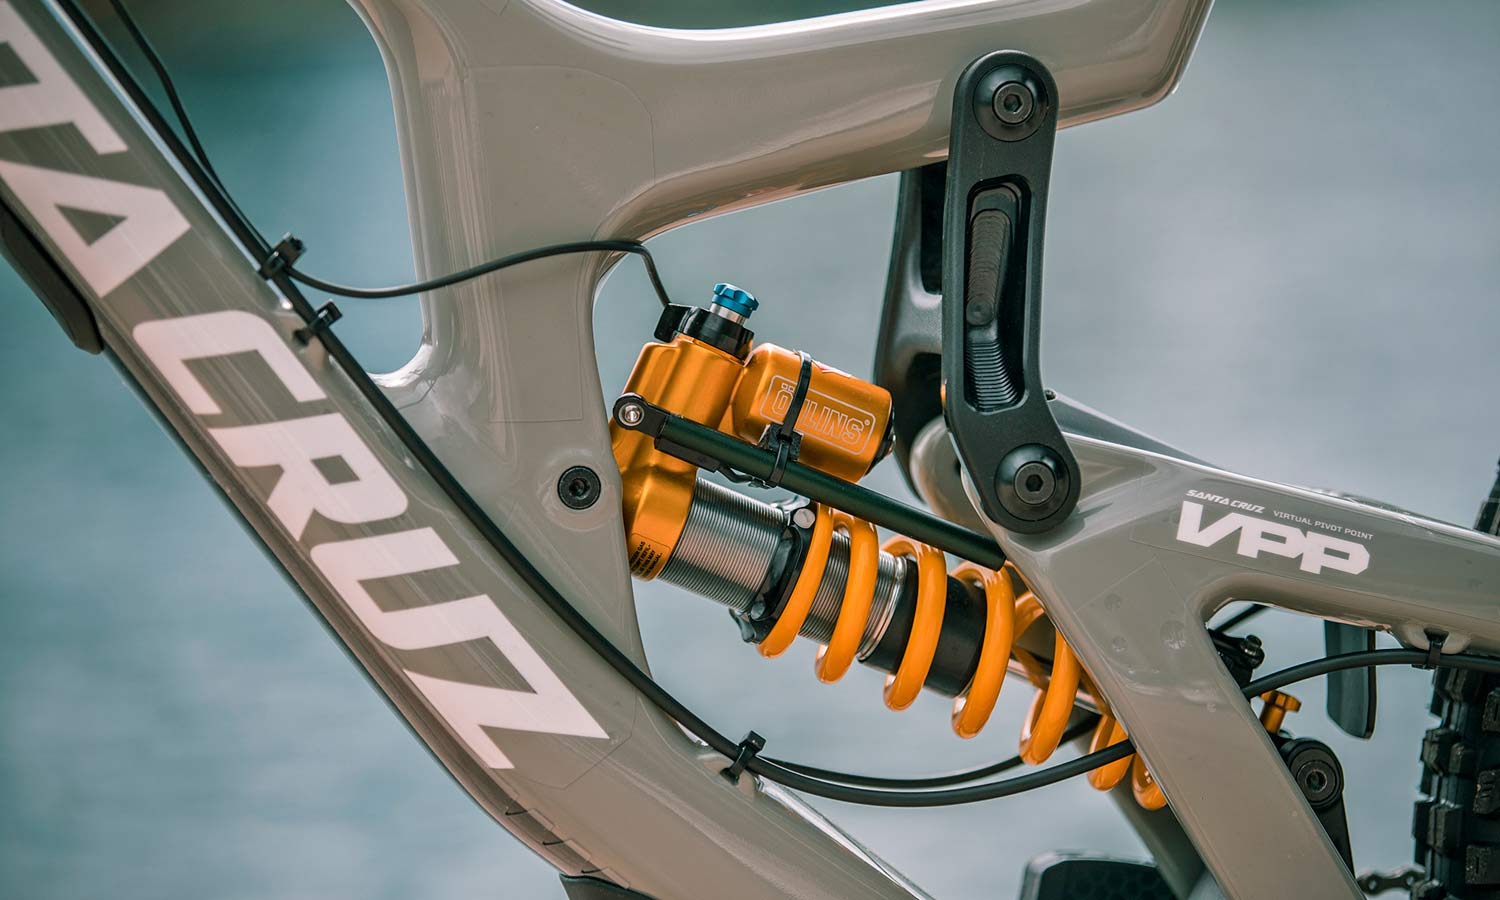 BYB Telemetry v2 pro MTB suspension analysis for the privateer mountain bike racer, photo by Michele Lotti shock setup